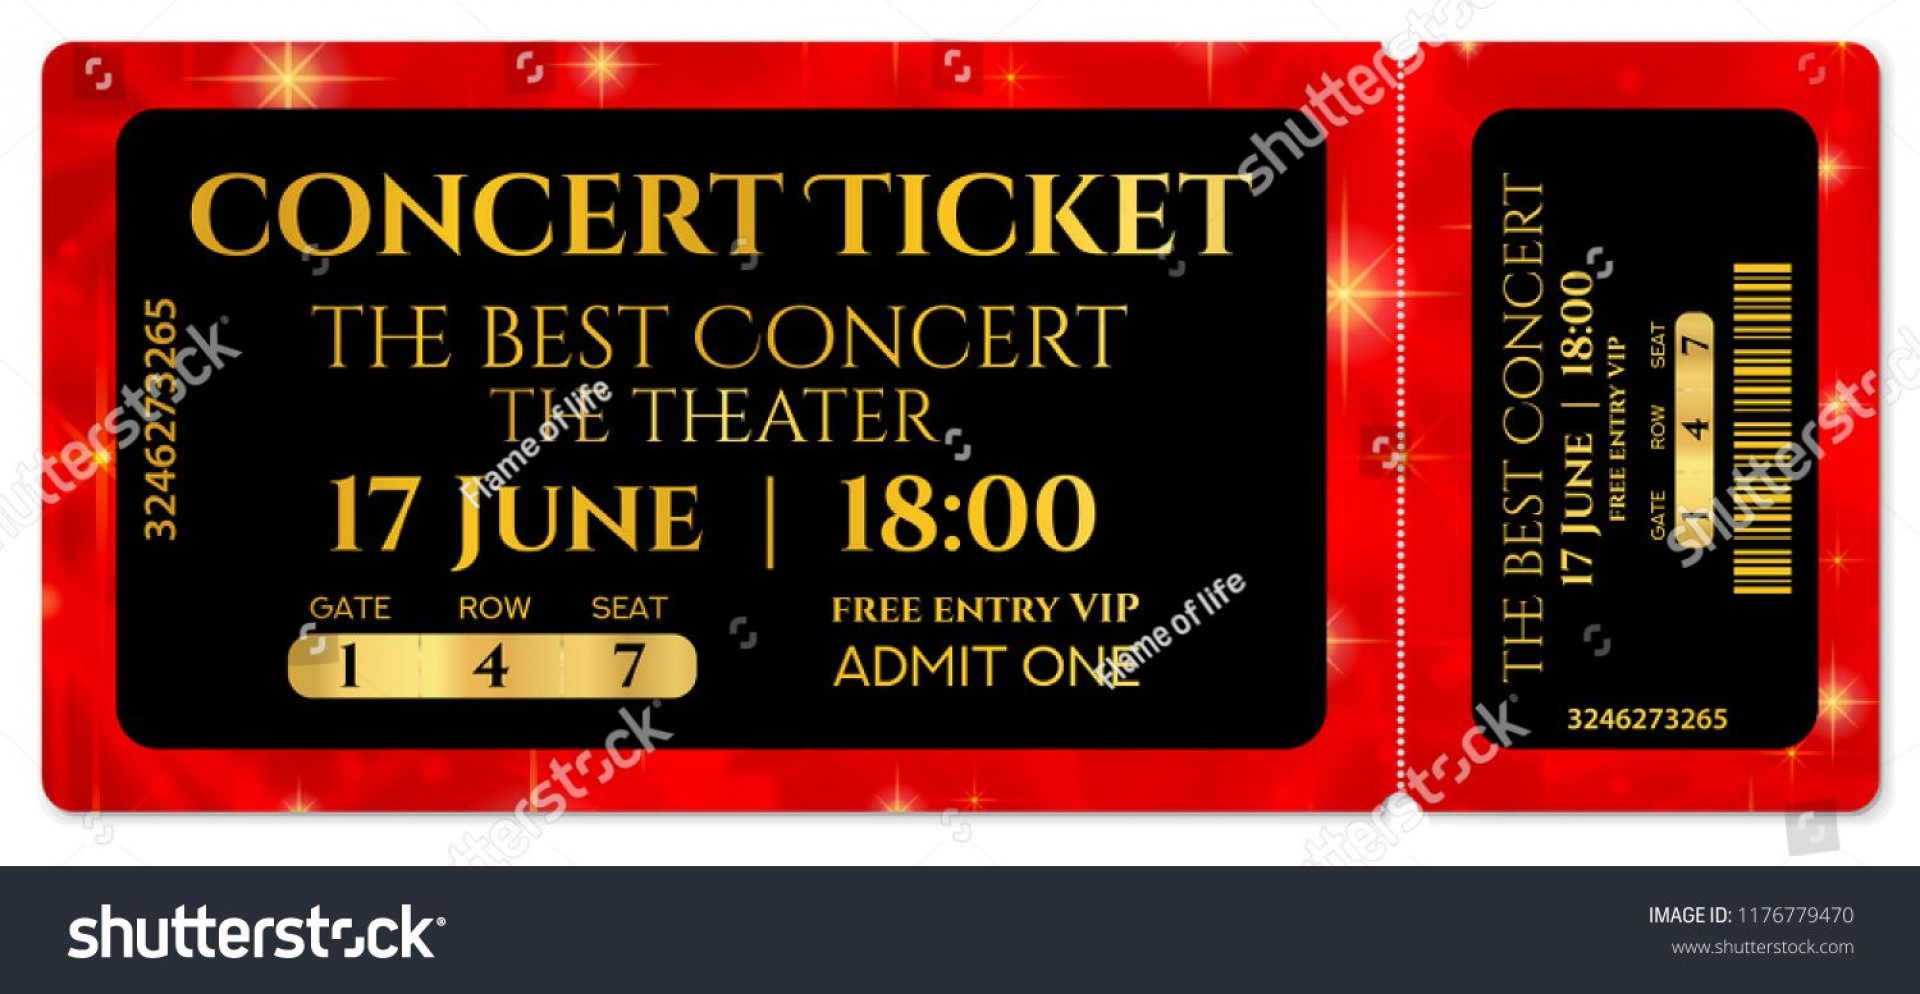 008 Striking Editable Ticket Template Free High Def  Concert Word Irctc Format Download Movie1920